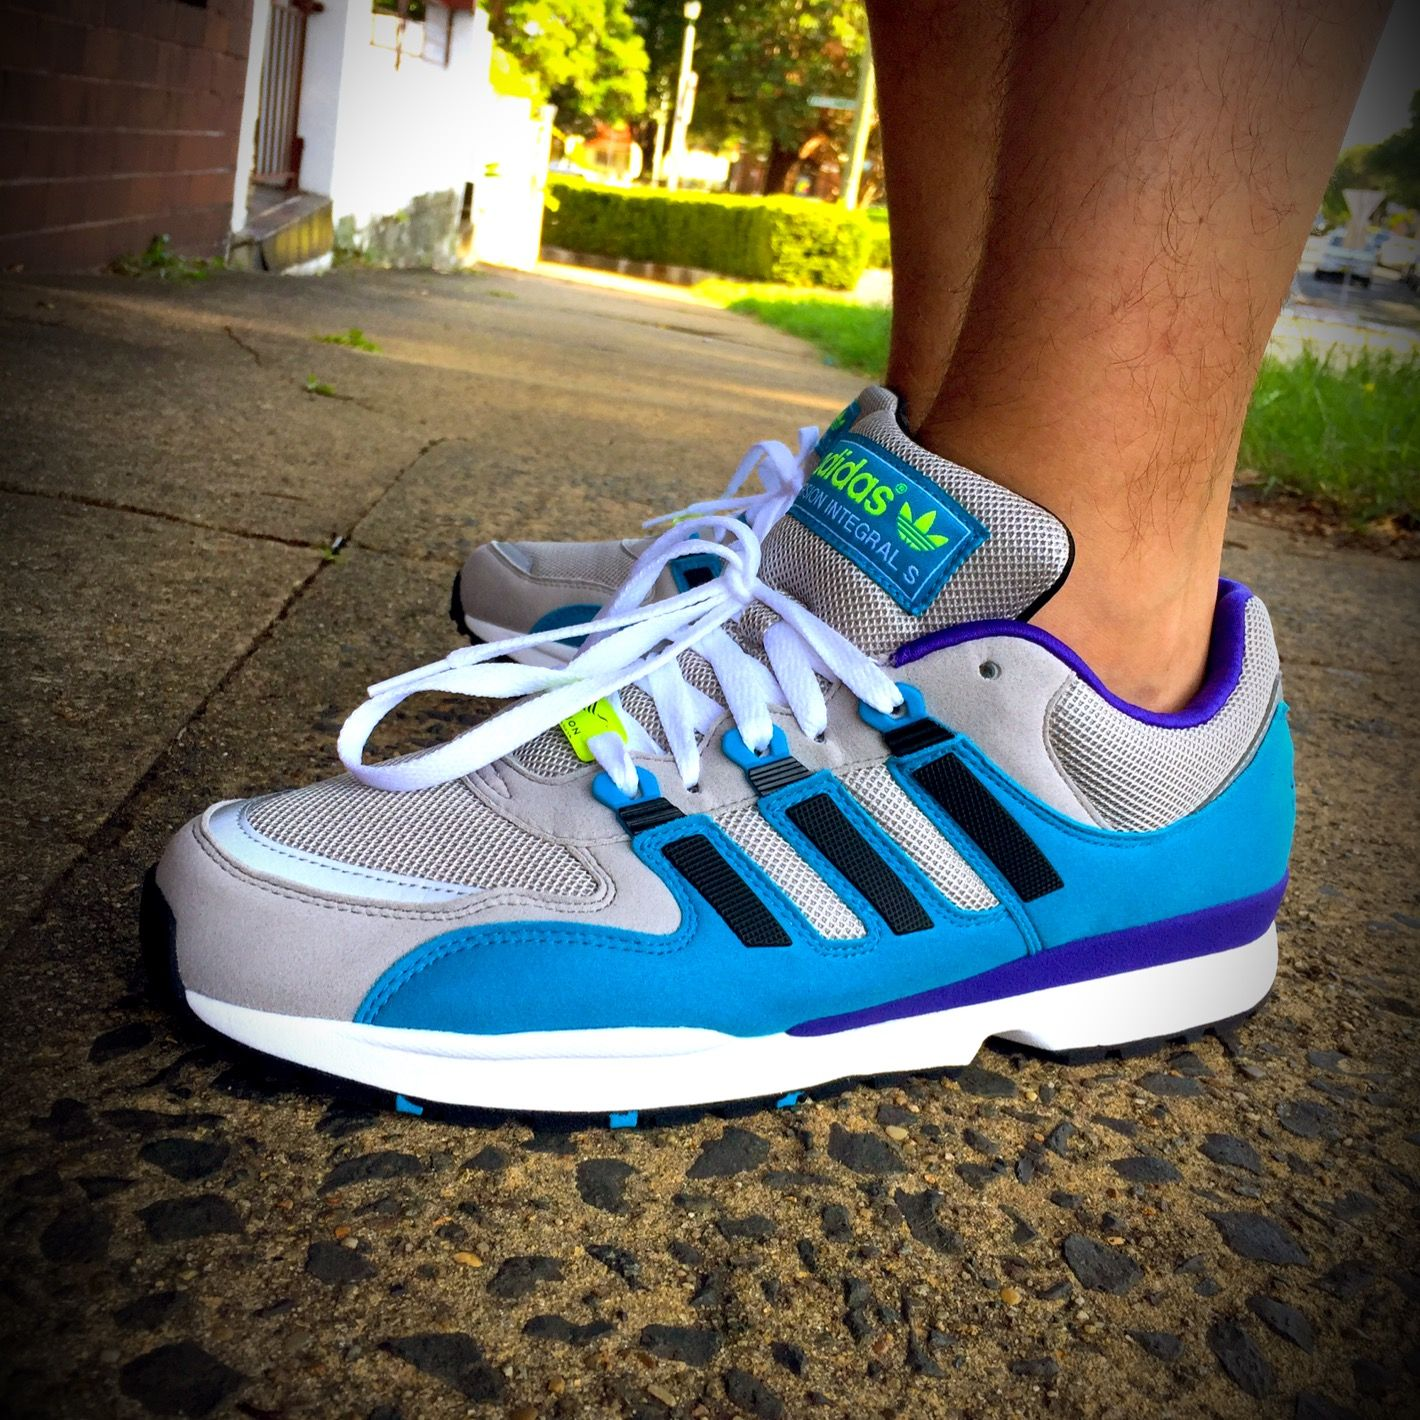 Authentic Discount Adidas Torsion Integral S OG Shoes store outlet